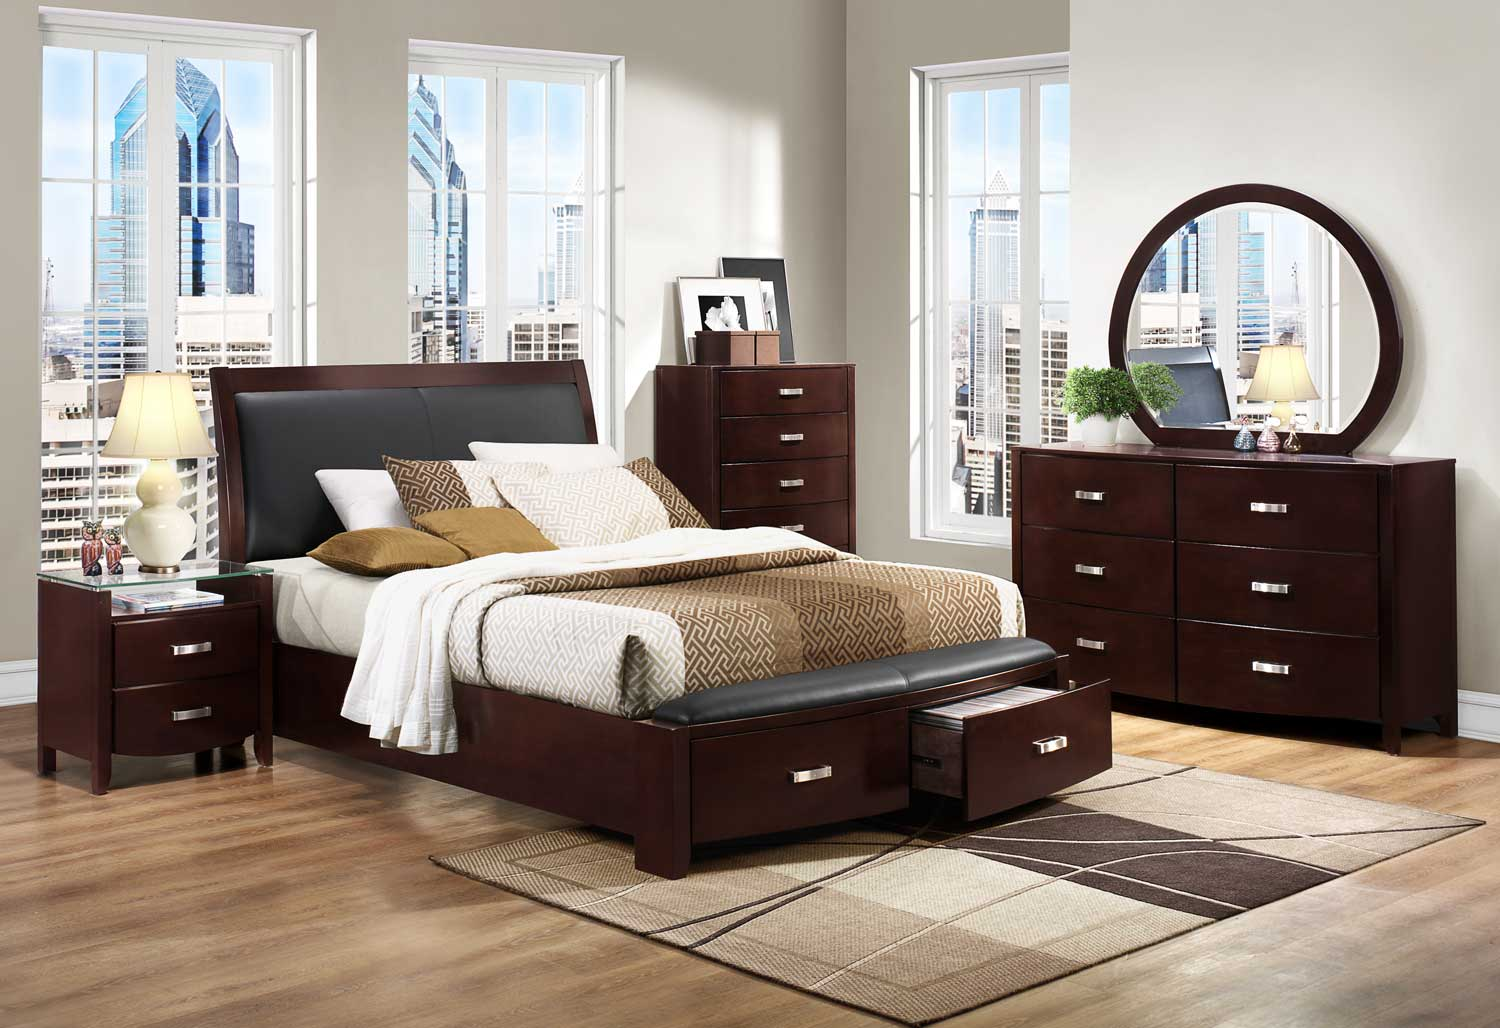 Homelegance lyric platform bedroom set dark espresso for Bed settings